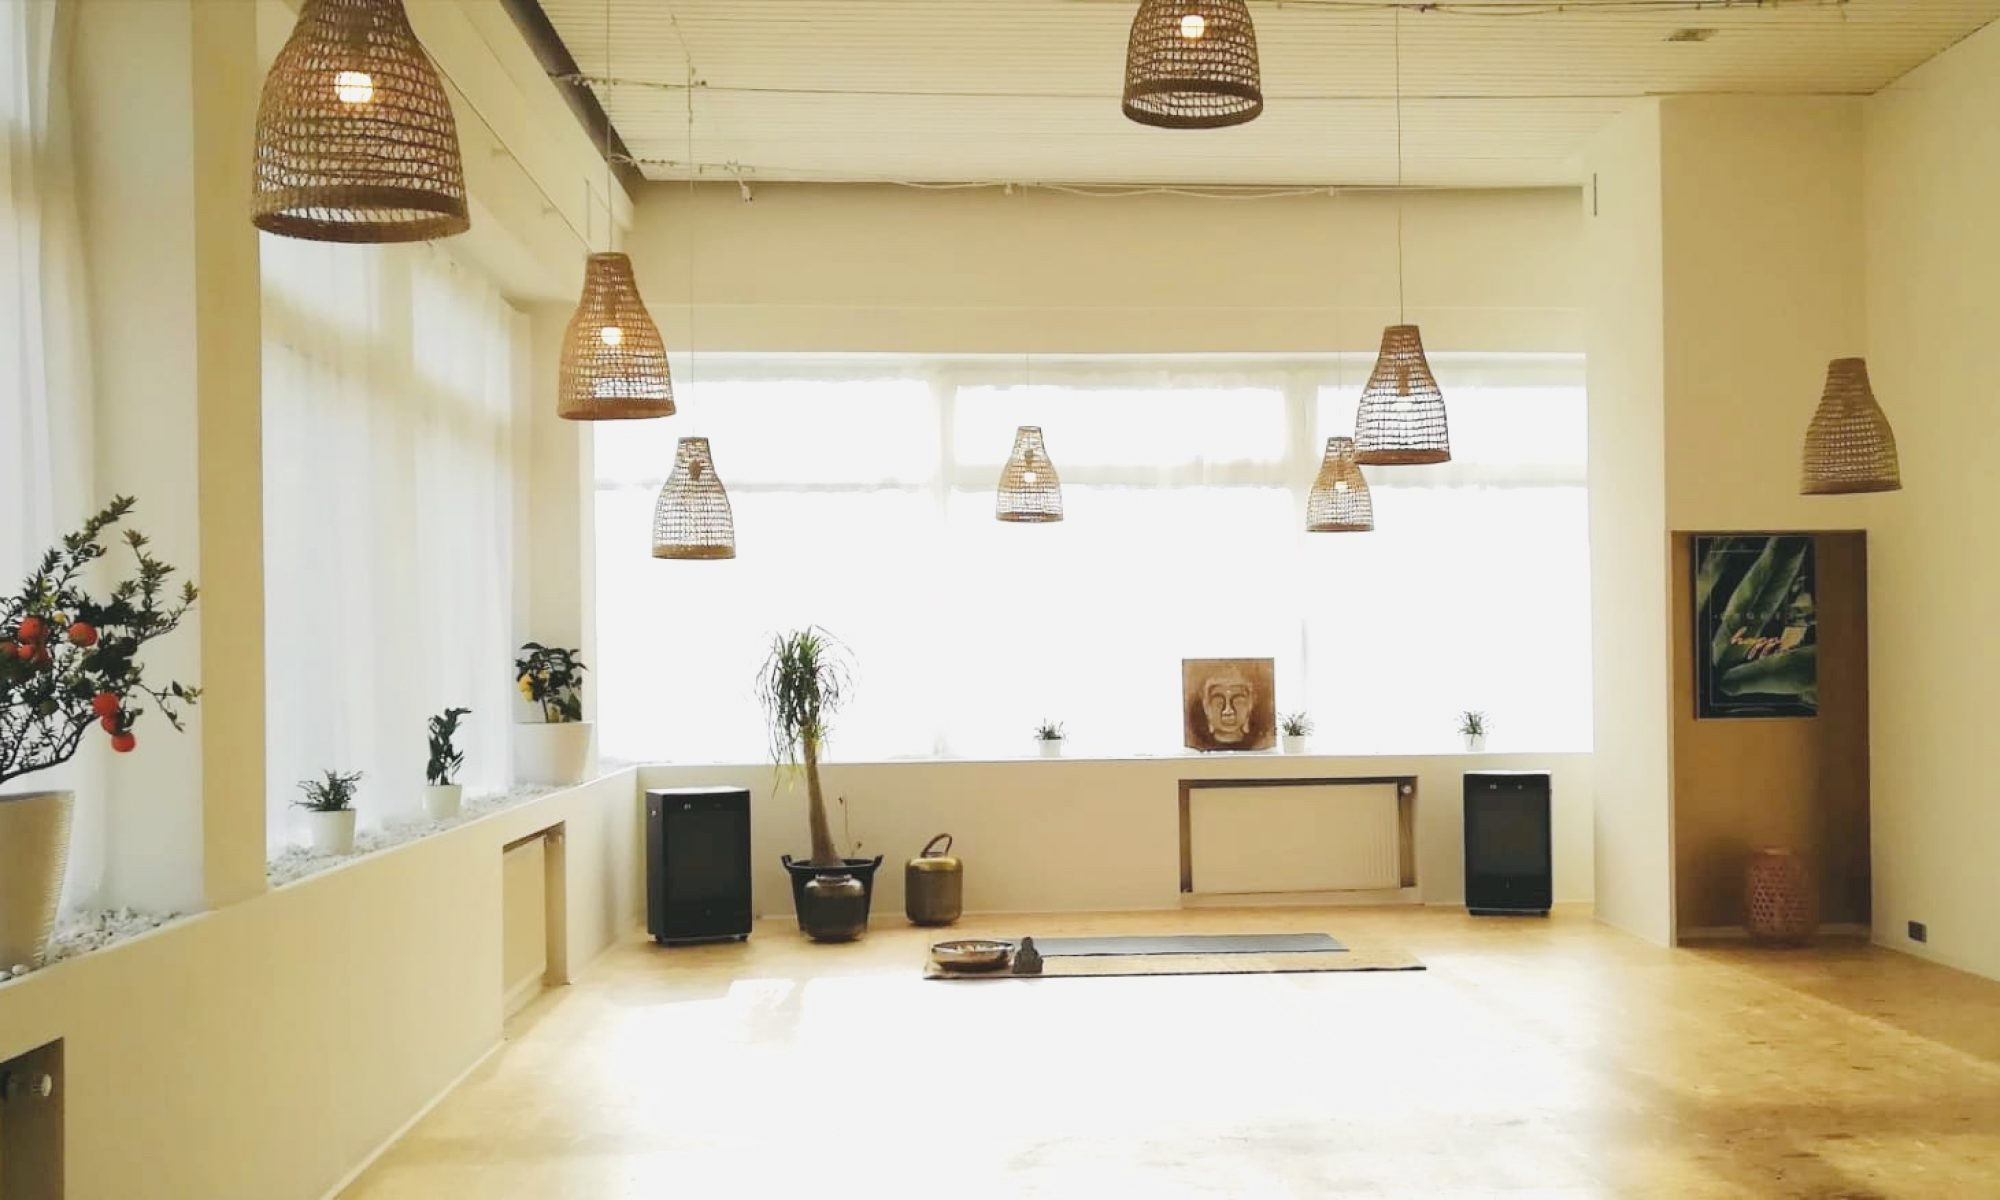 Studio 108 Würzburg - Yoga. Wellness. Lifestyle.